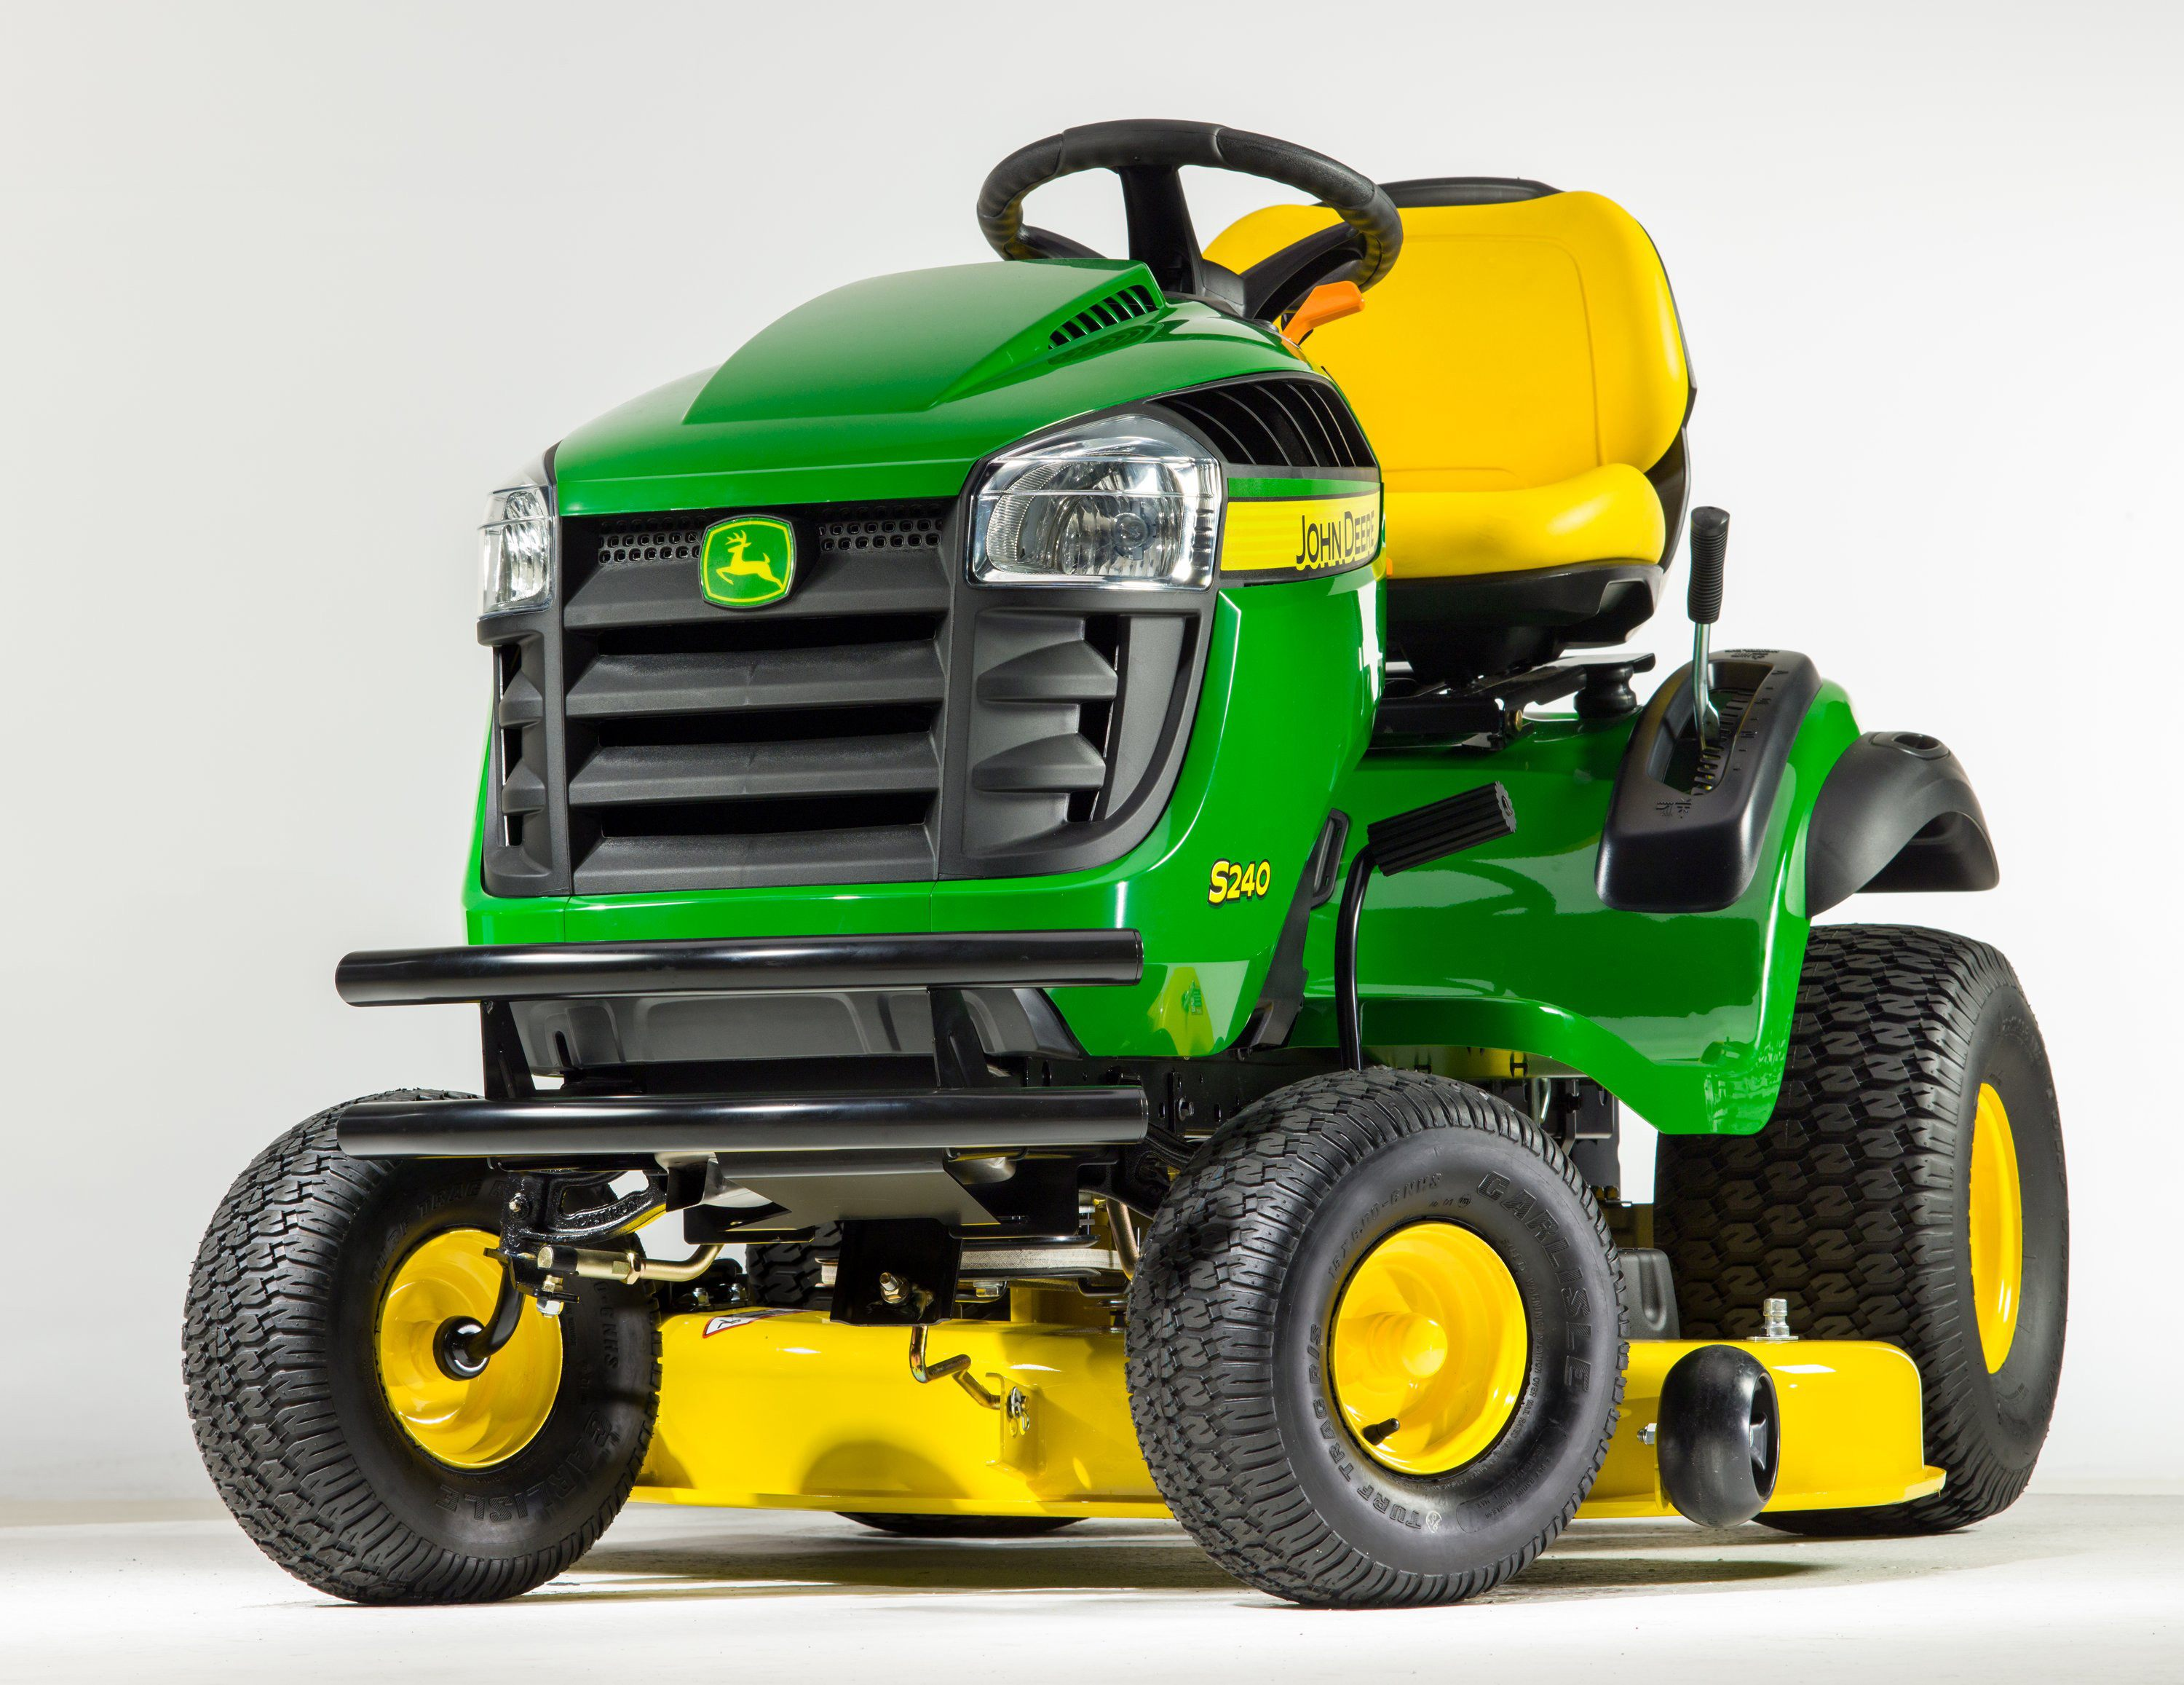 John Deere S240 Lawn Tractor with 42-in. Deck